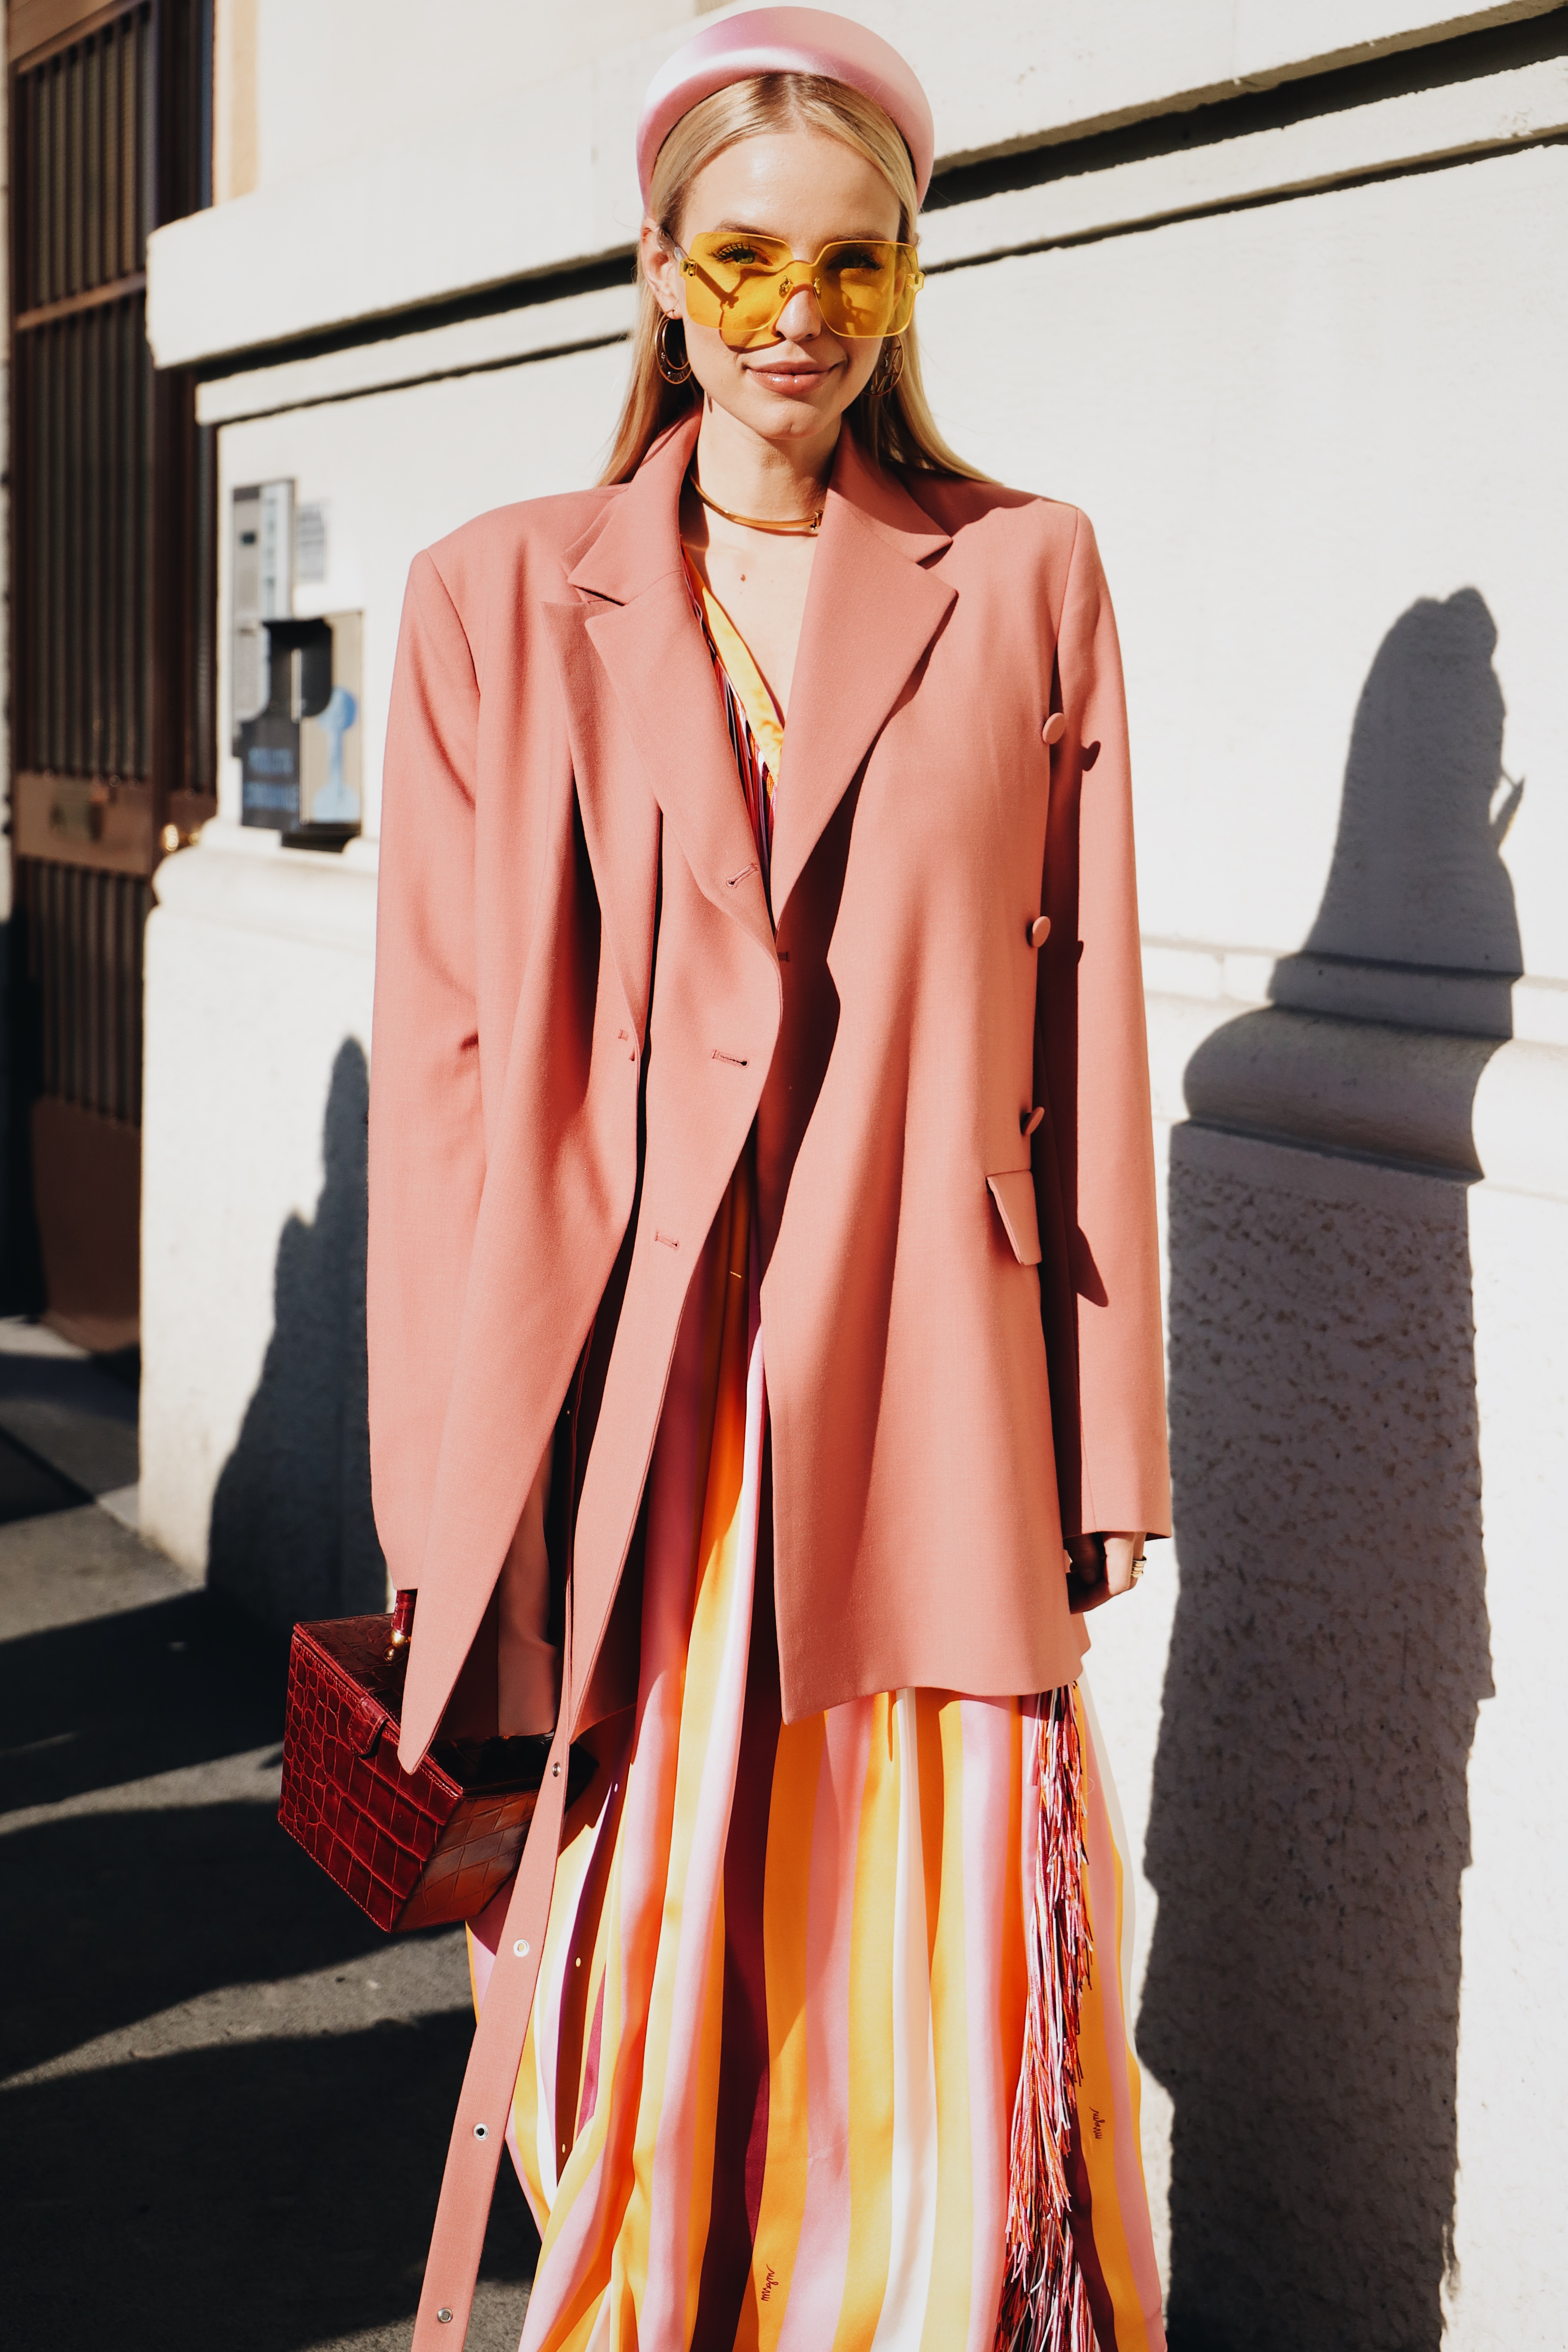 Leonie Hanne wearing pink hat and coat with orange sunglasses and red purse.